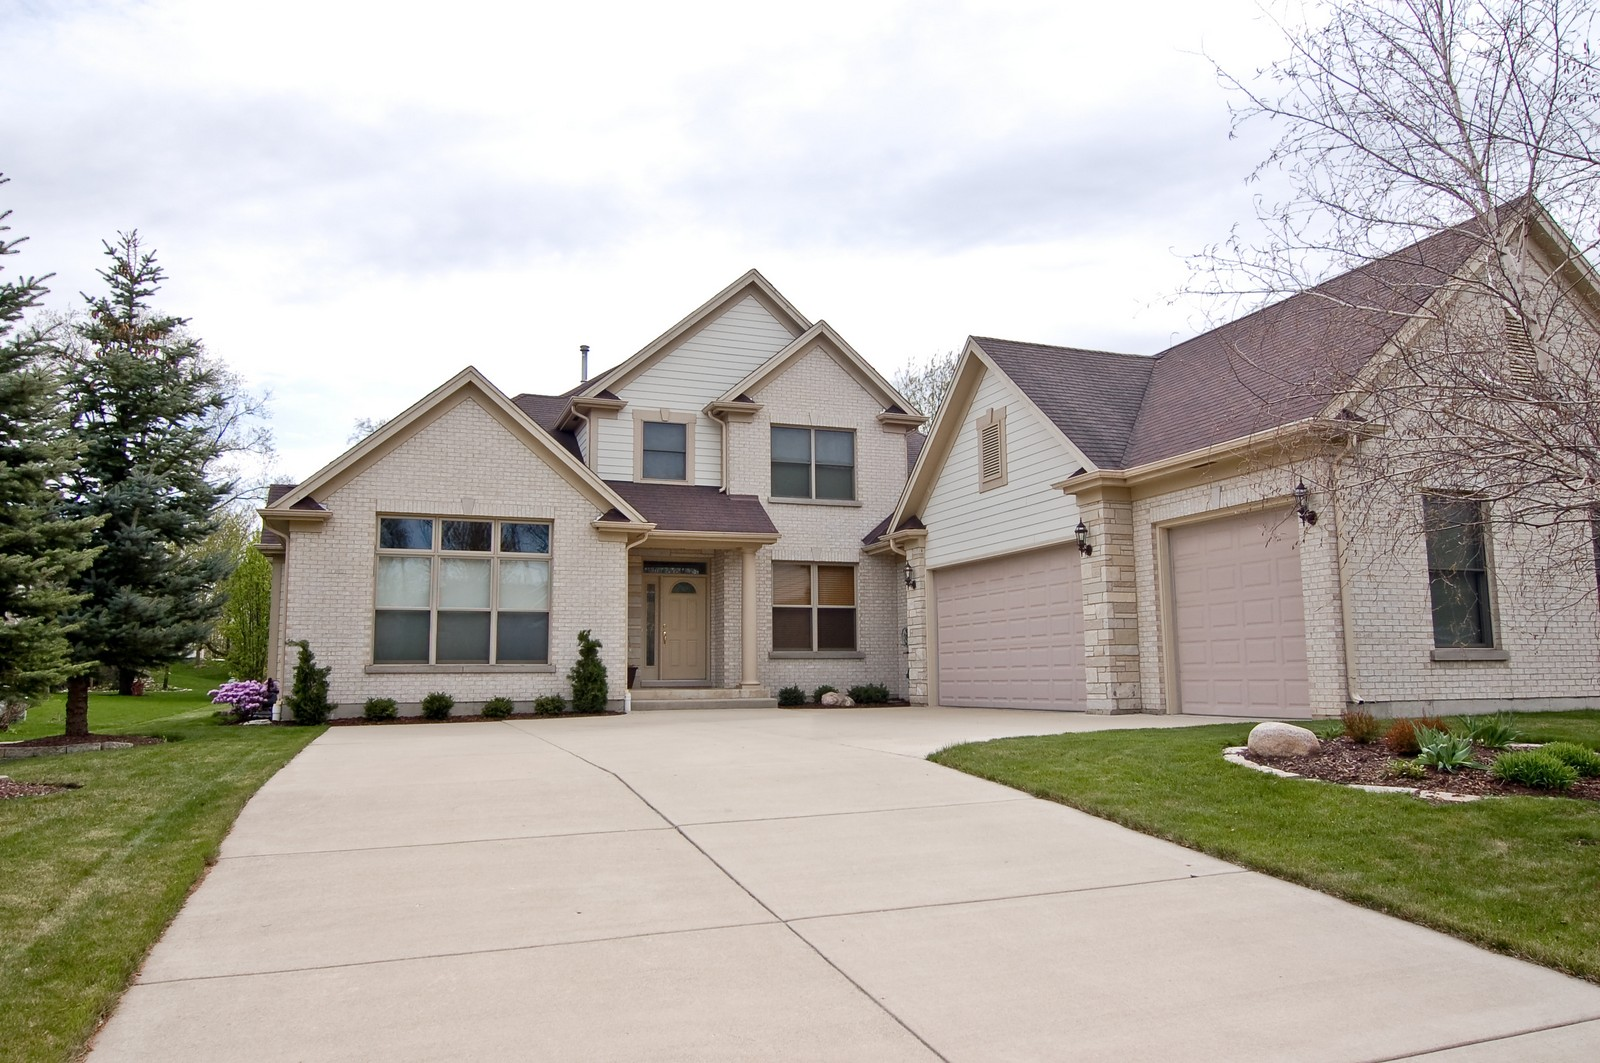 Real Estate Photography - 745 Ceresia, Crystal Lake, IL, 60014 - Side View